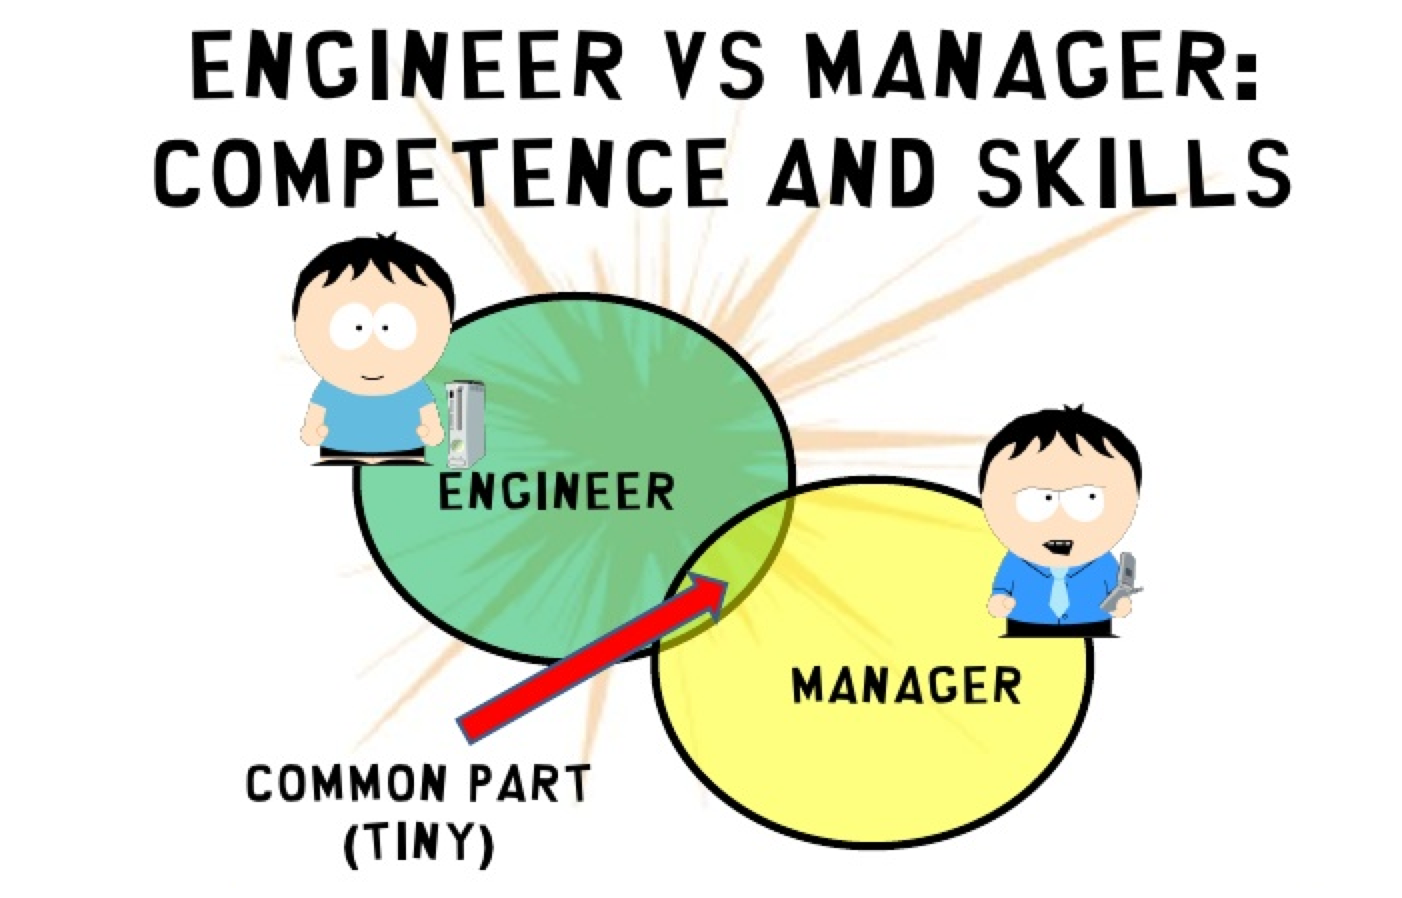 Engineer vs Manager: competence and skills